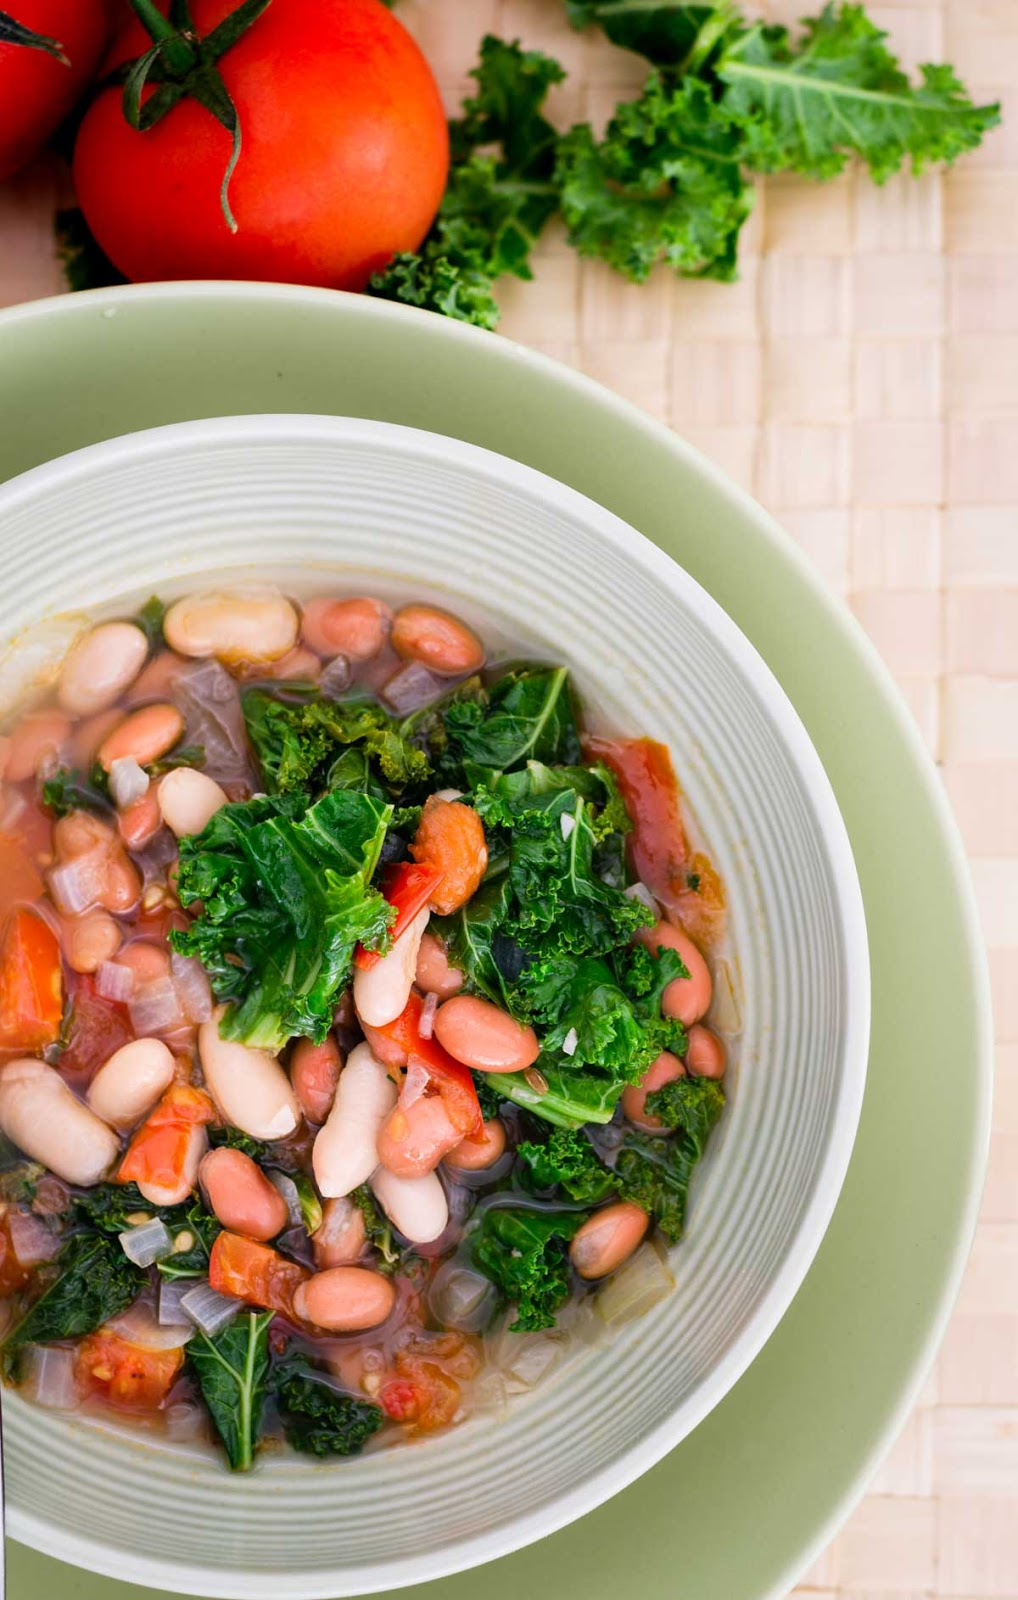 Mark and Spencer's copy cat Kale Tomato Beans and Fennel Soup photo